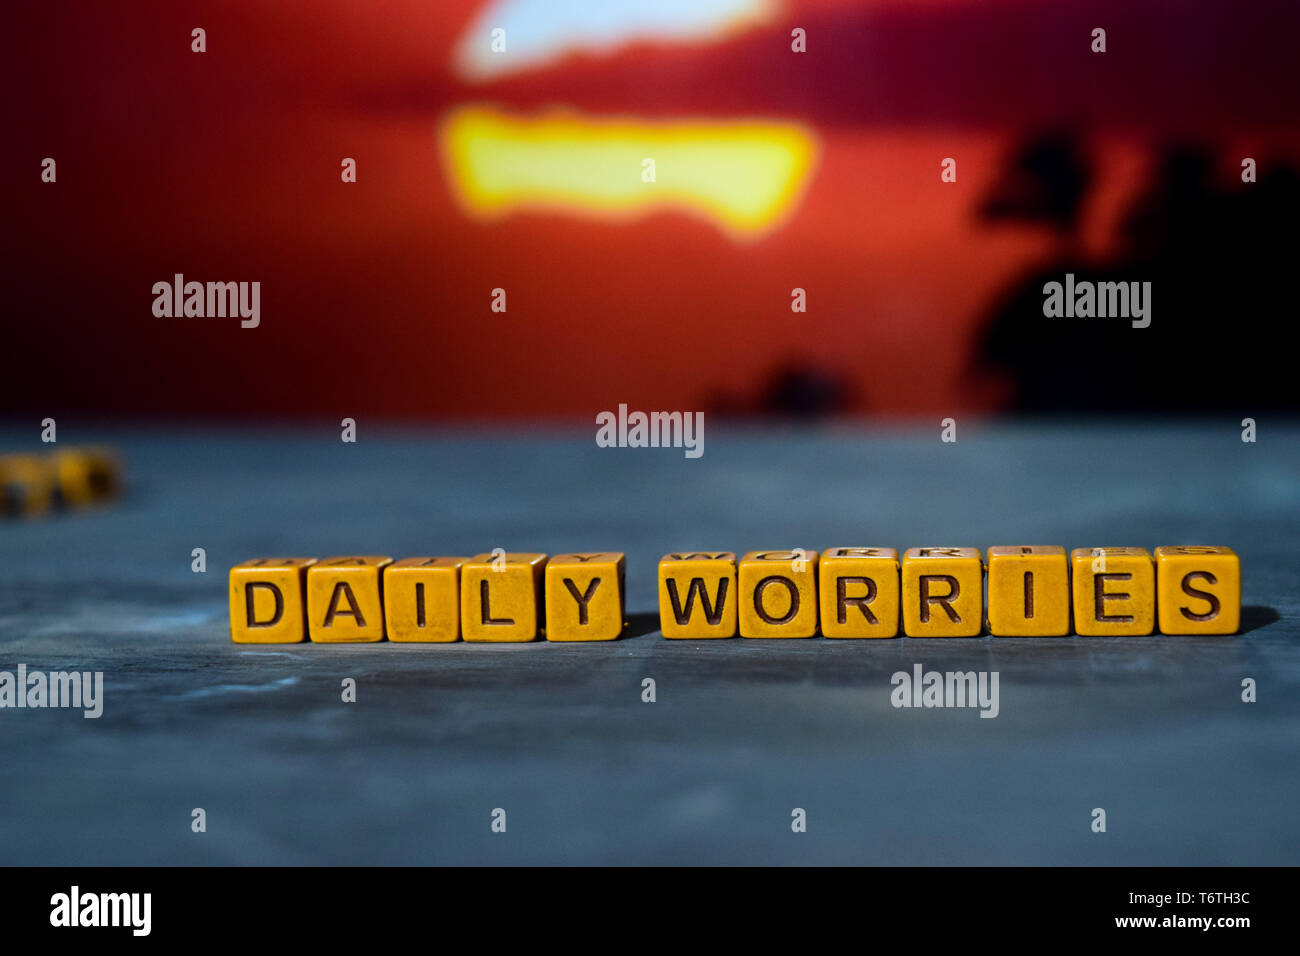 Daily worries on wooden blocks. Cross processed image with bokeh background - Stock Image